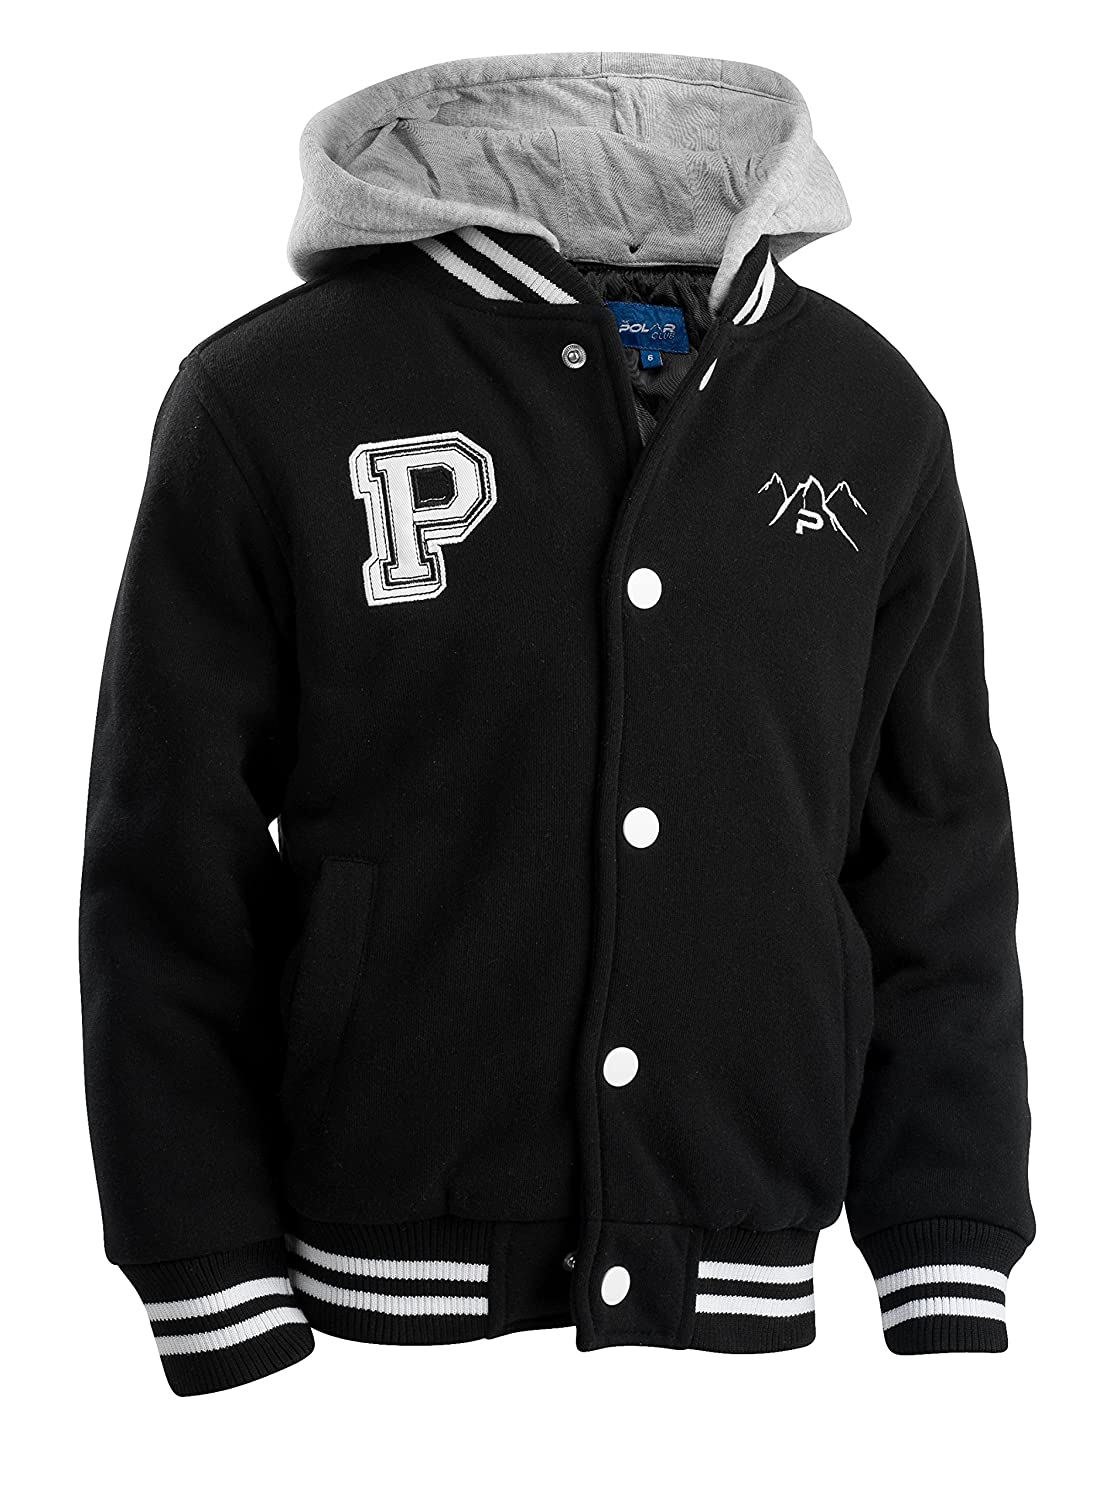 The Polar Club Boys' Fleece Varsity Baseball Jacket Removable Hood